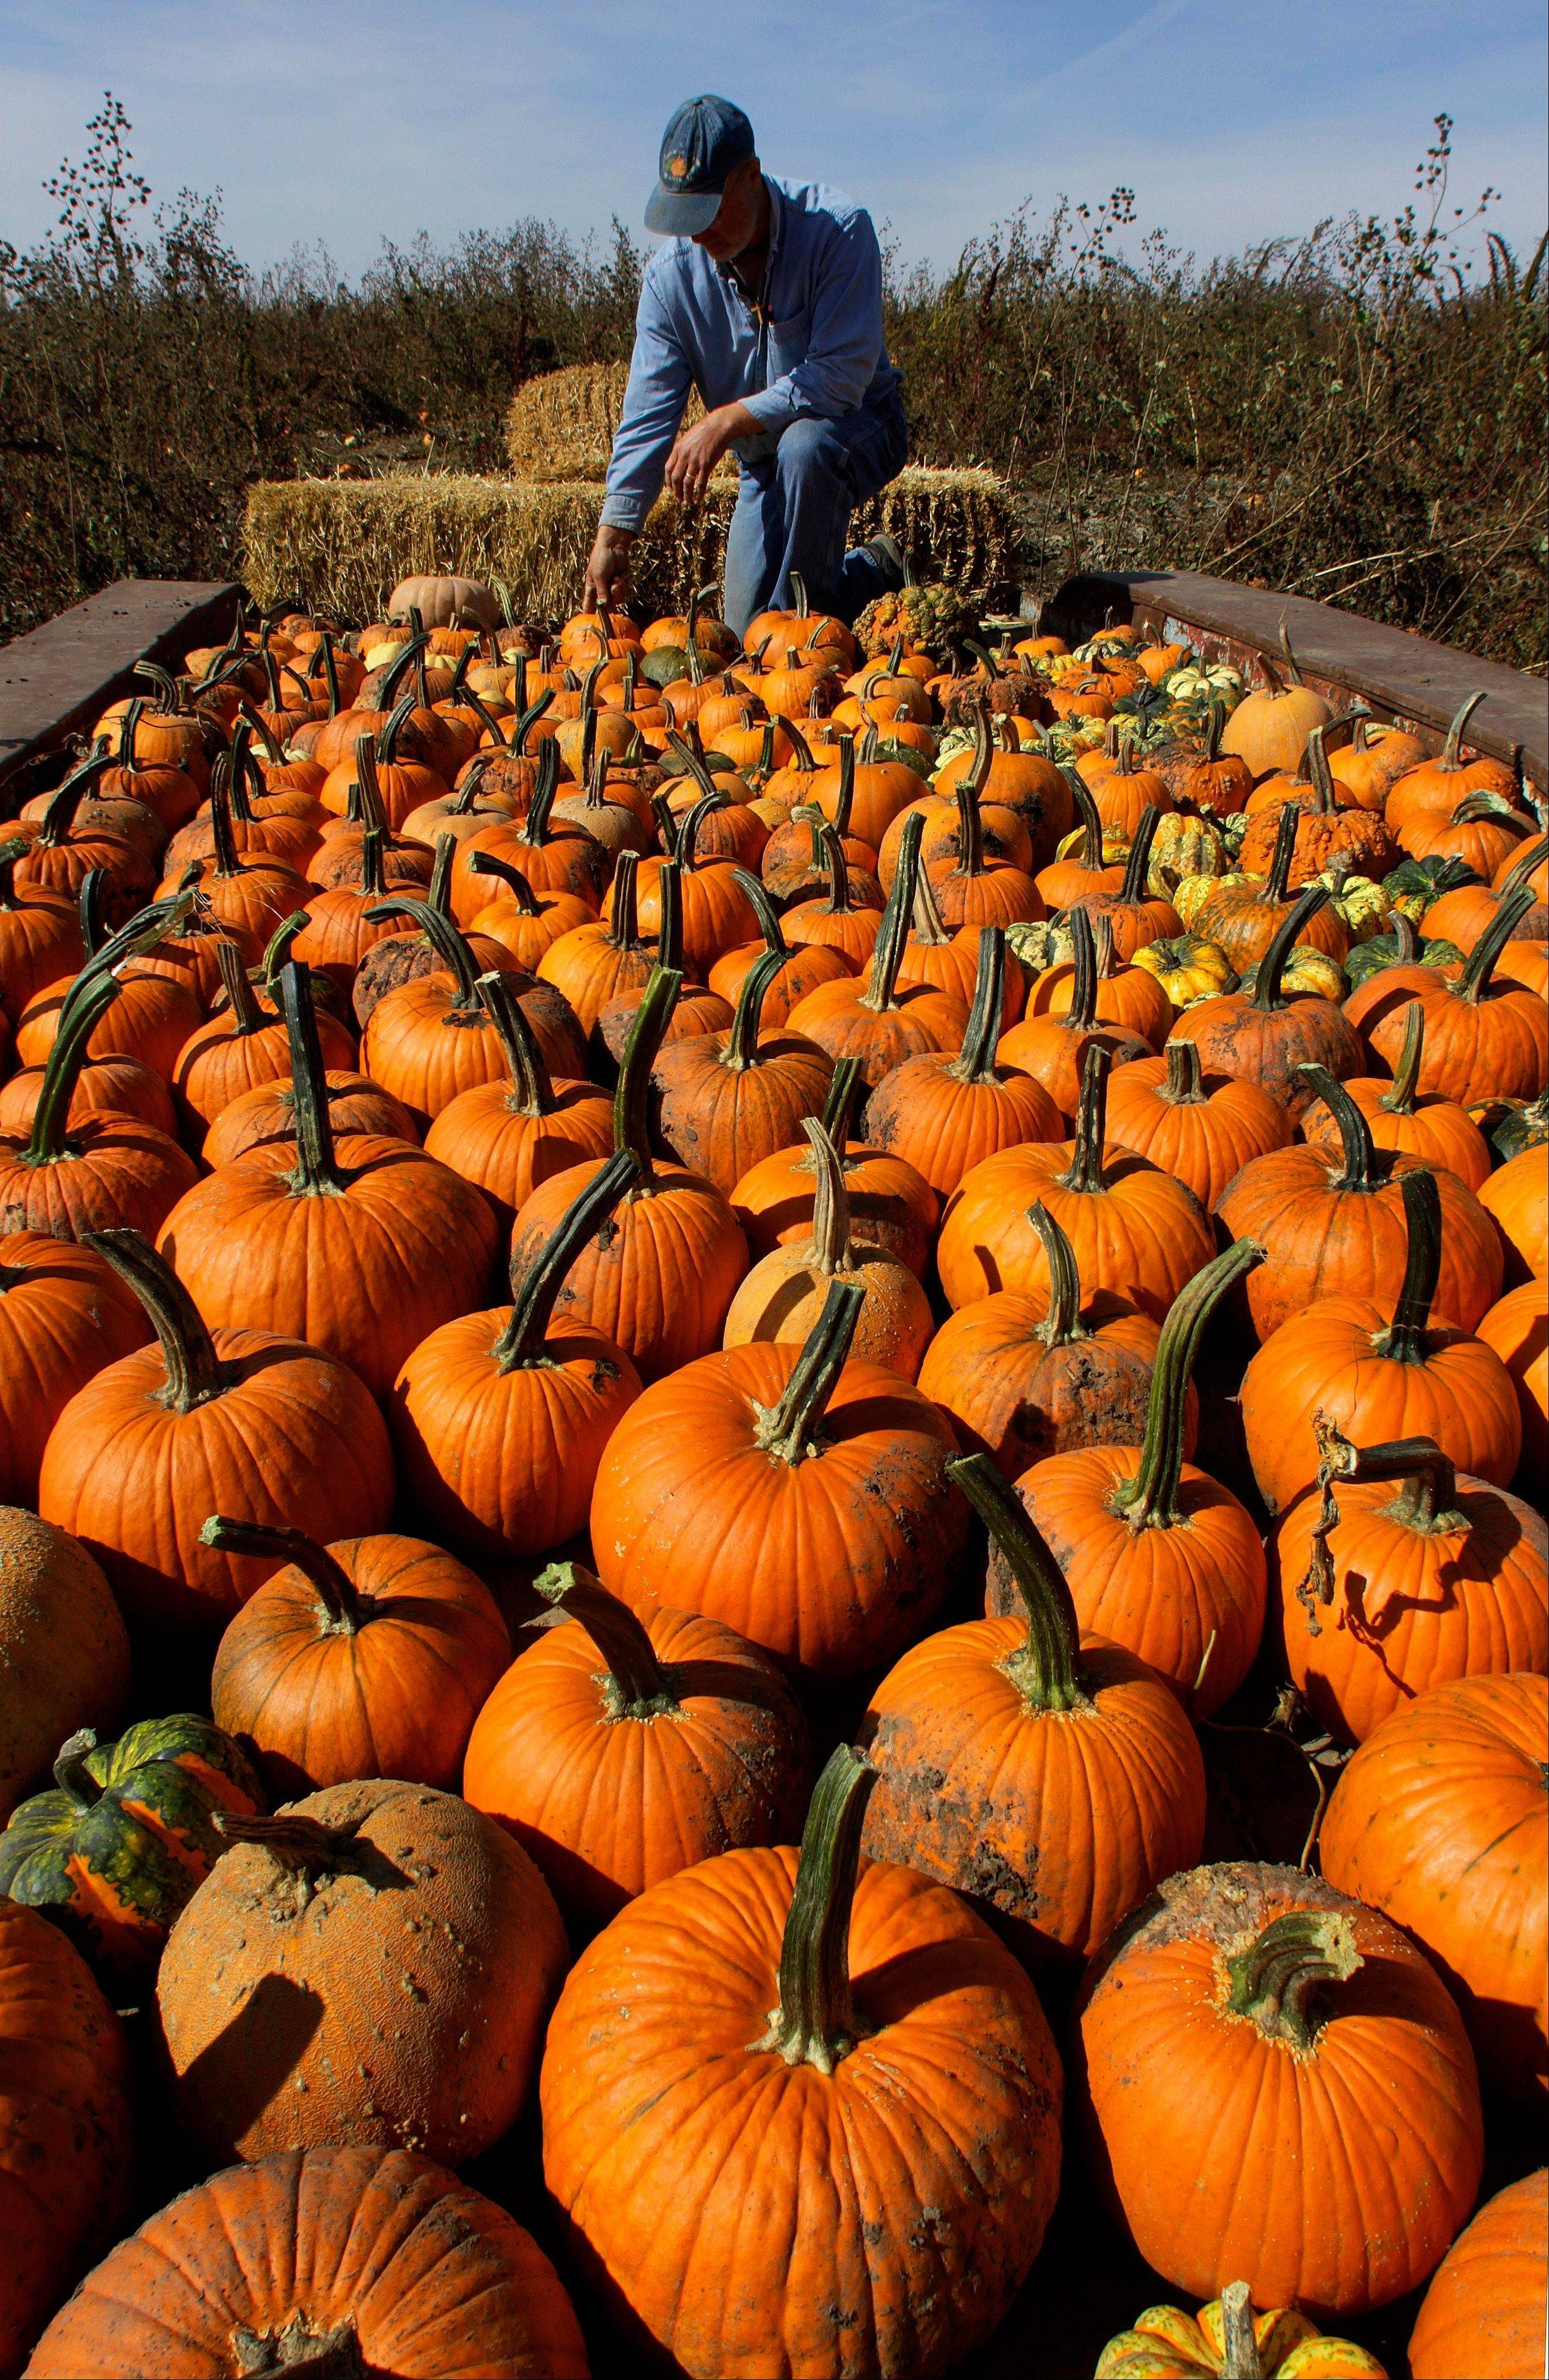 John Ackerman inspects harvested pumpkins on his farm Tuesday, Oct. 9, 2012 in Morton, Ill.